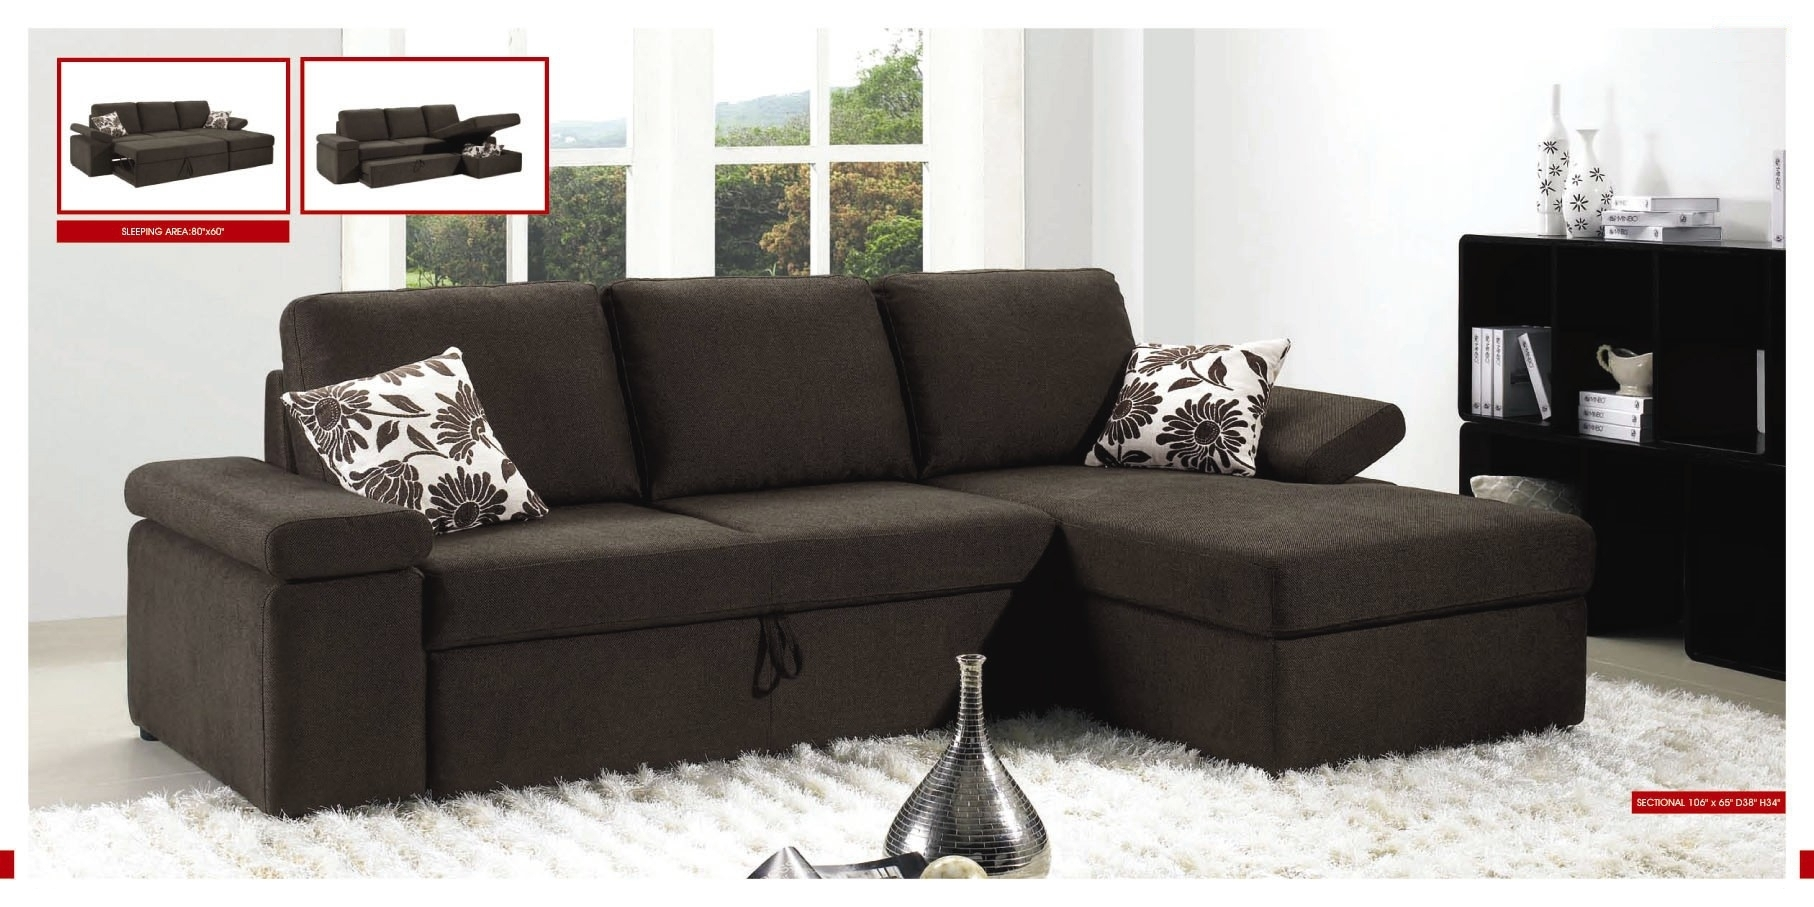 Awesome Fancy Small Sectional Sleeper Sofa 20 With Additional Home pertaining to Pull Out Beds Sectional Sofas (Image 1 of 10)